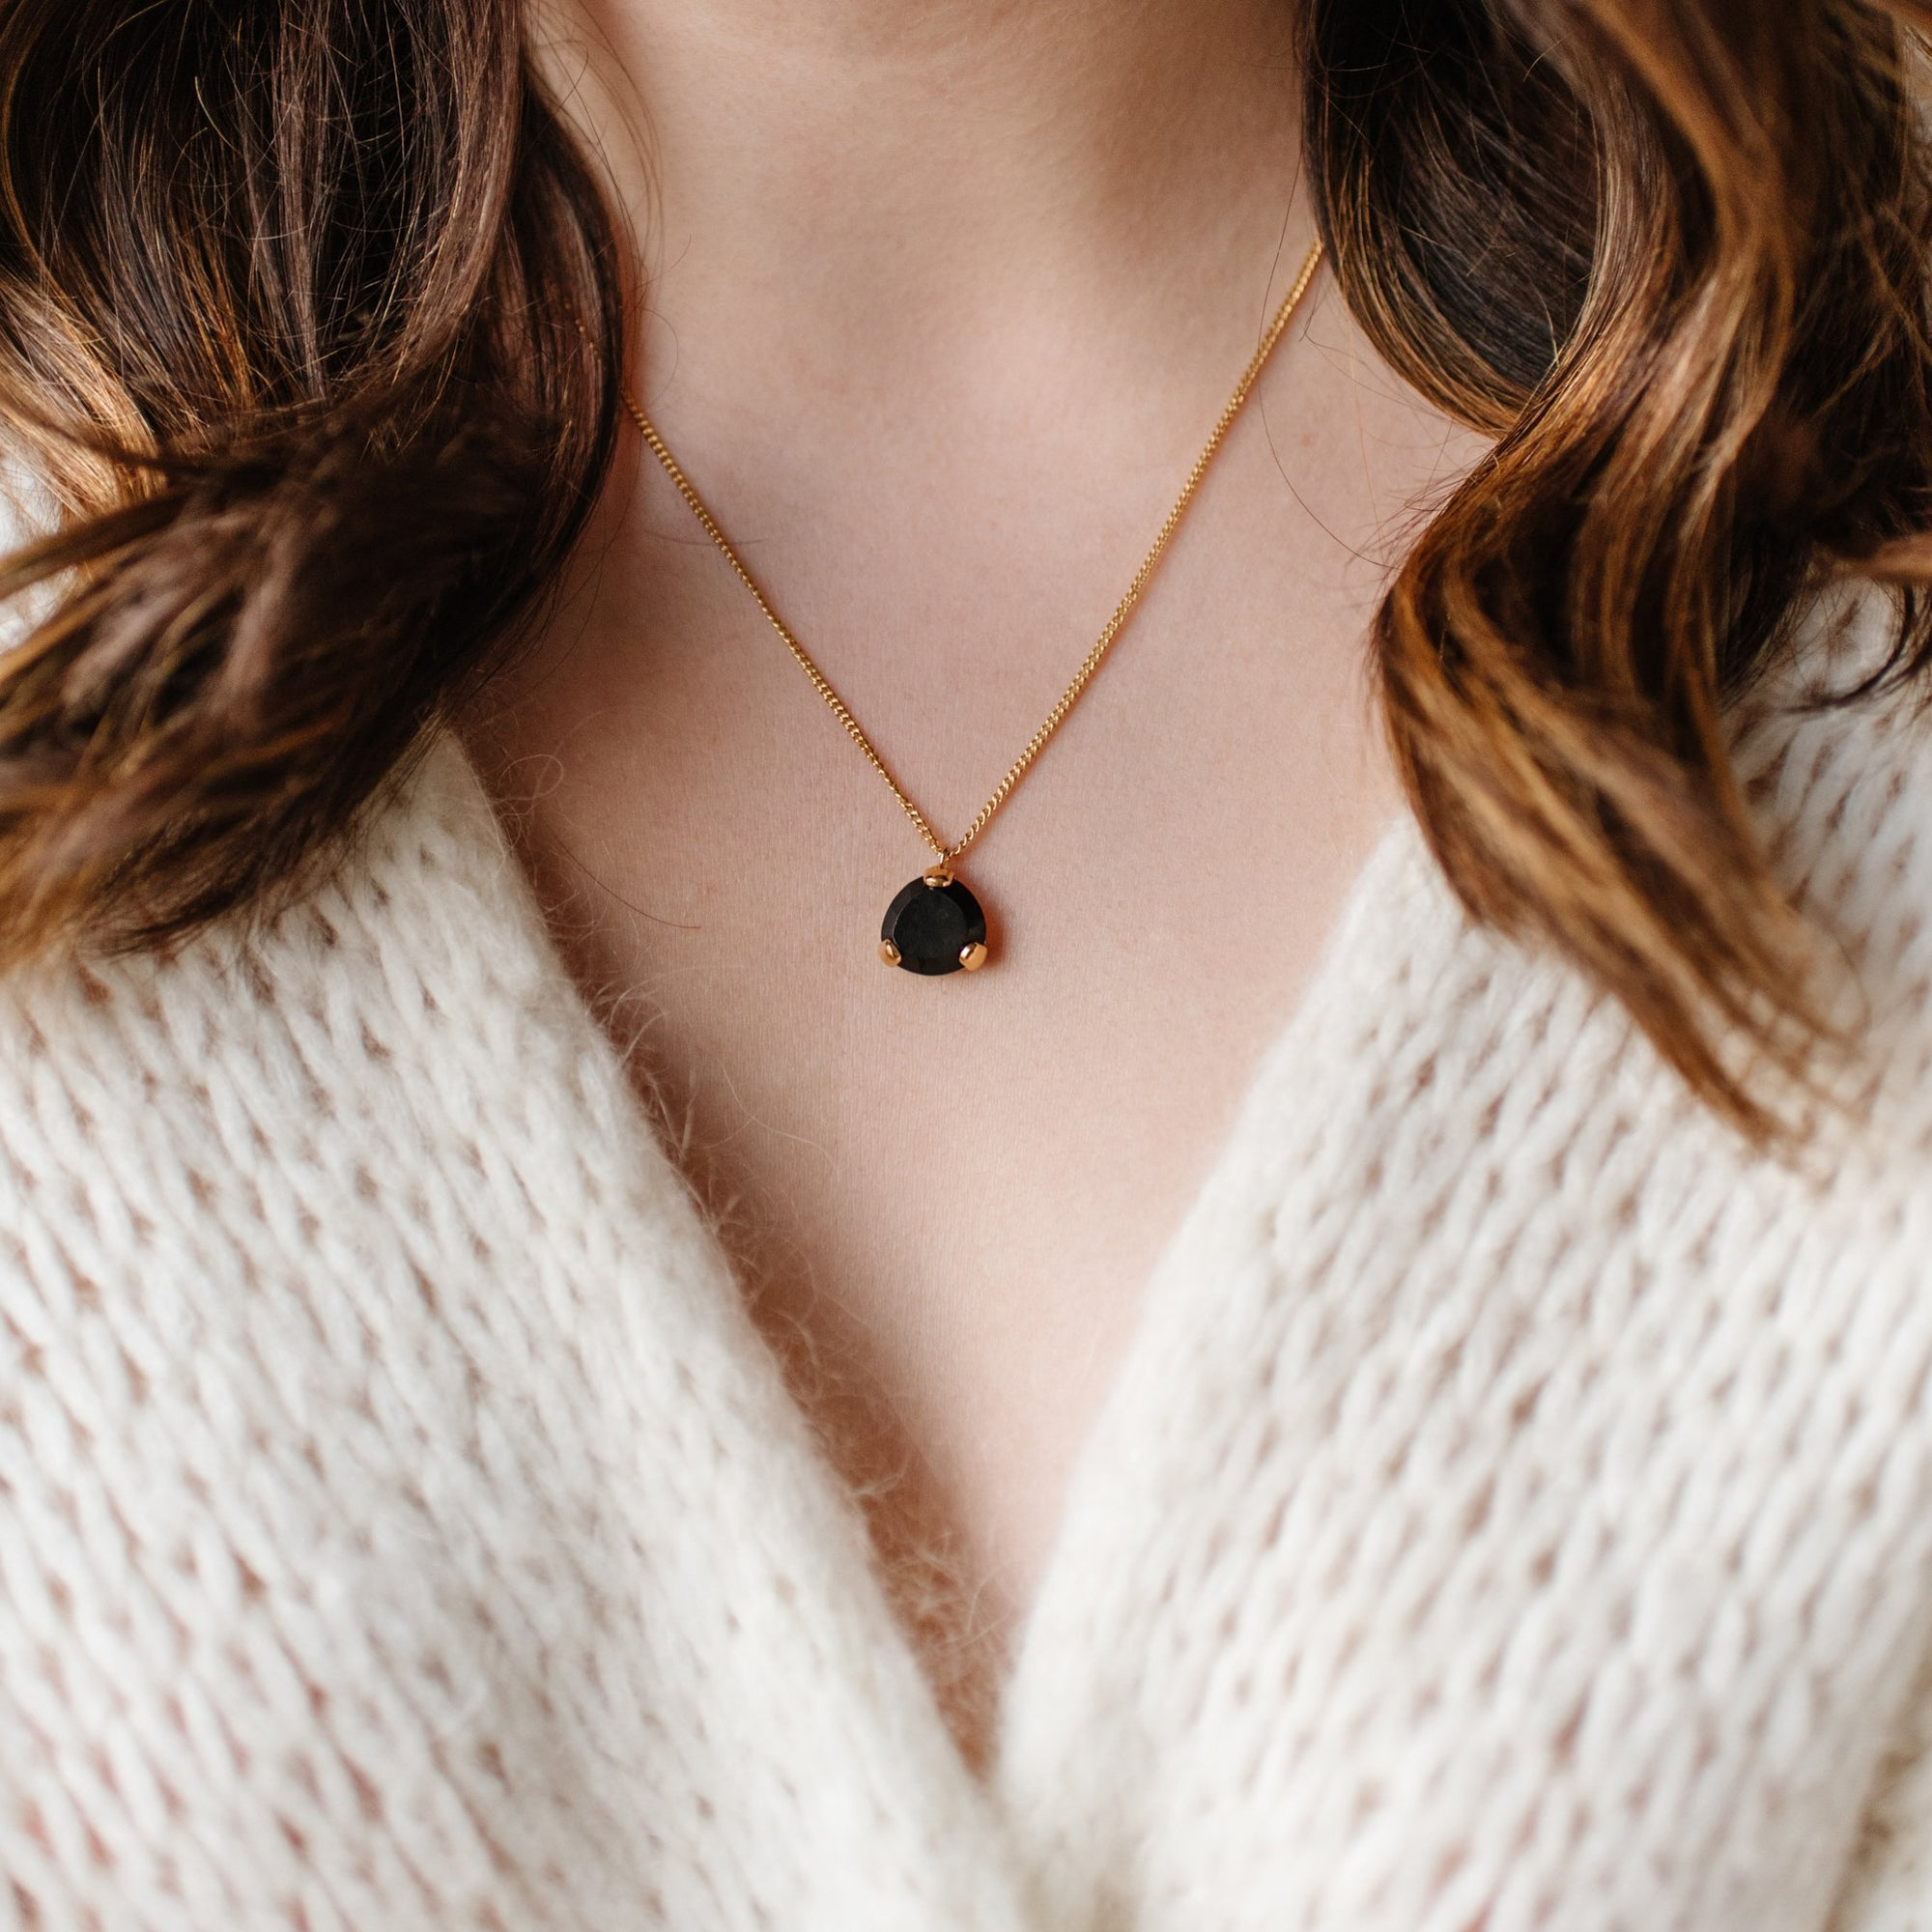 Fearless Mini Pendant Necklace - Black Onyx & Gold - SO PRETTY CARA COTTER